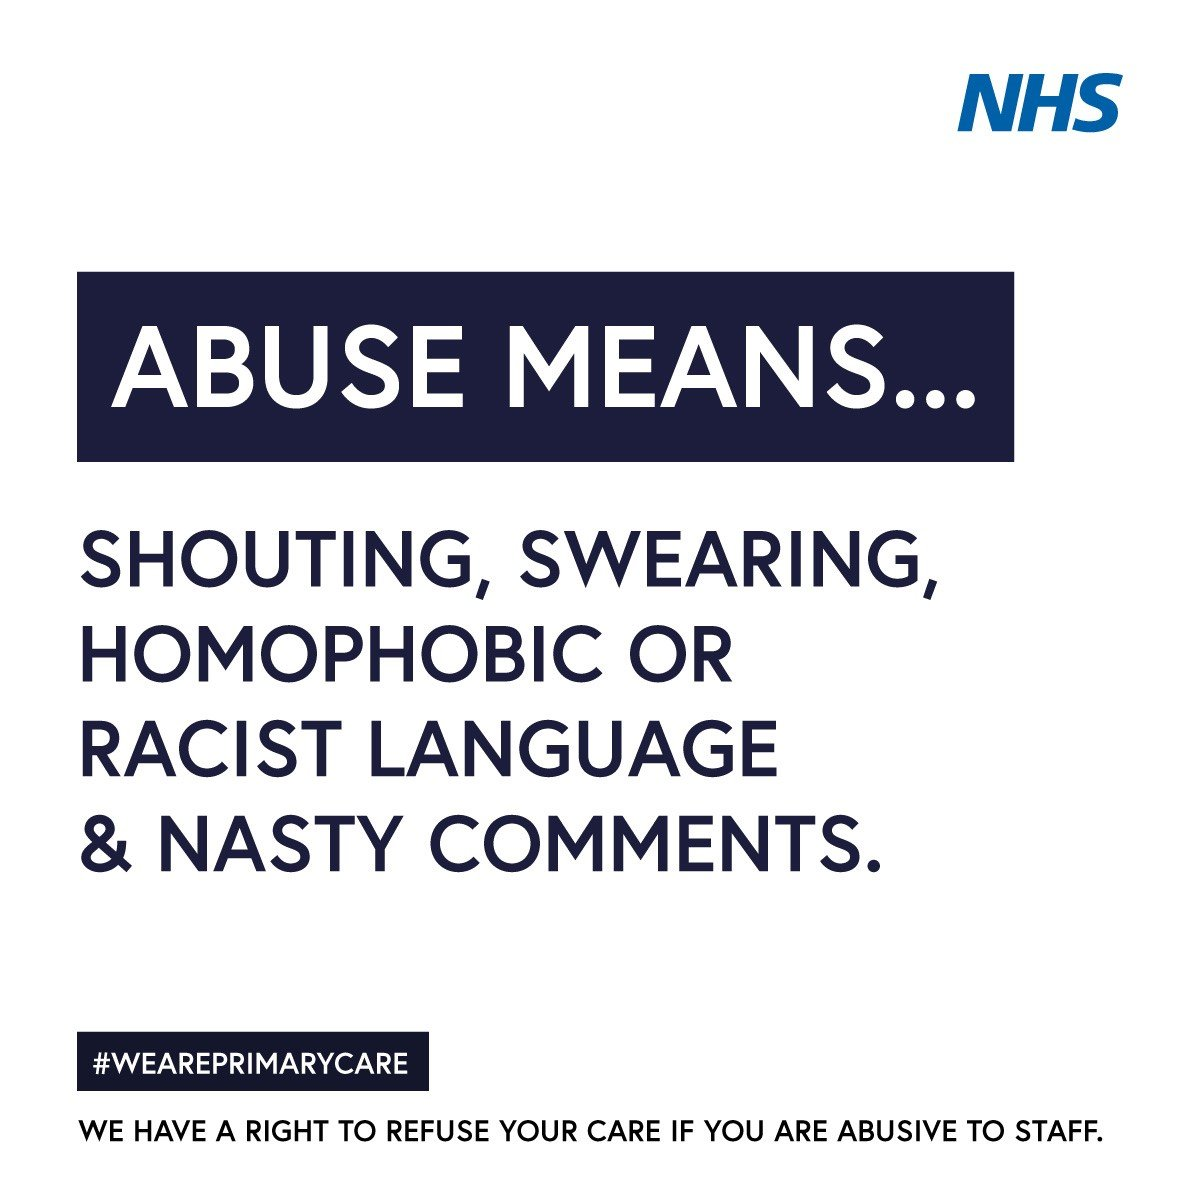 Abuse means... shouting, swearing, homophobic or racist language & nasty comments. #WeArePrimaryCare. We have a right to refuse your care if you are abusive to staff.